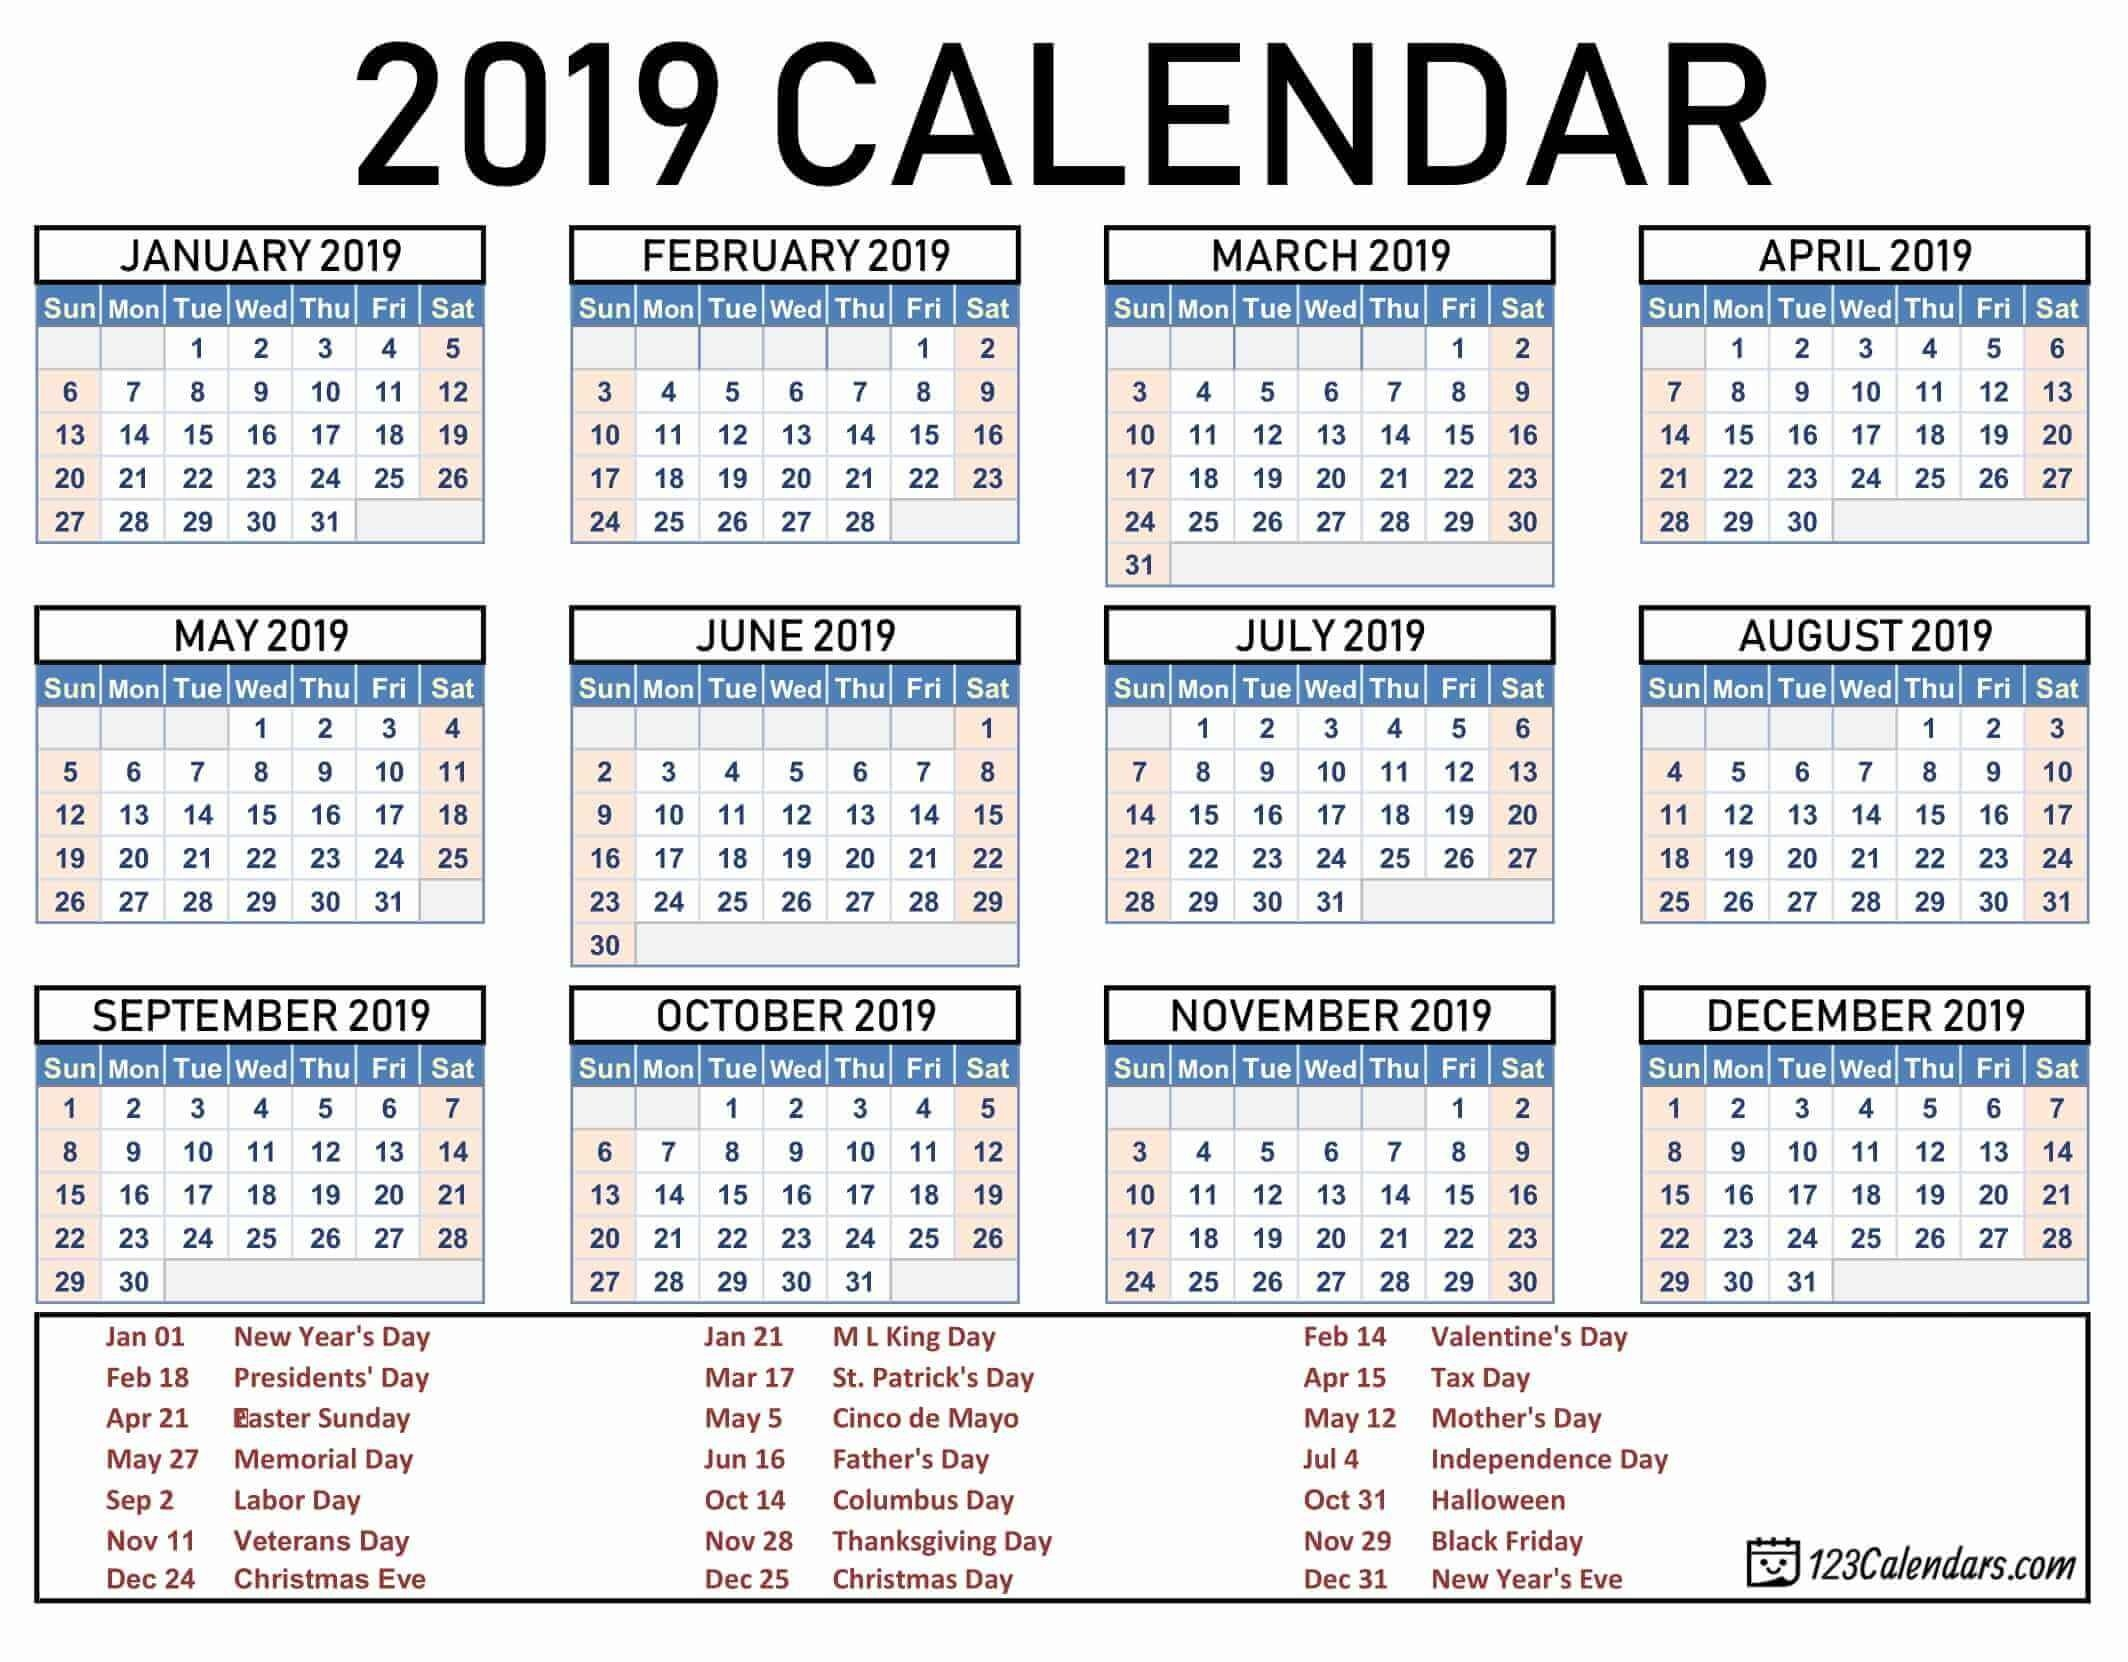 Year 2019 Printable Calendar Templates - 123Calendars Picture Of A 2019 Calendar